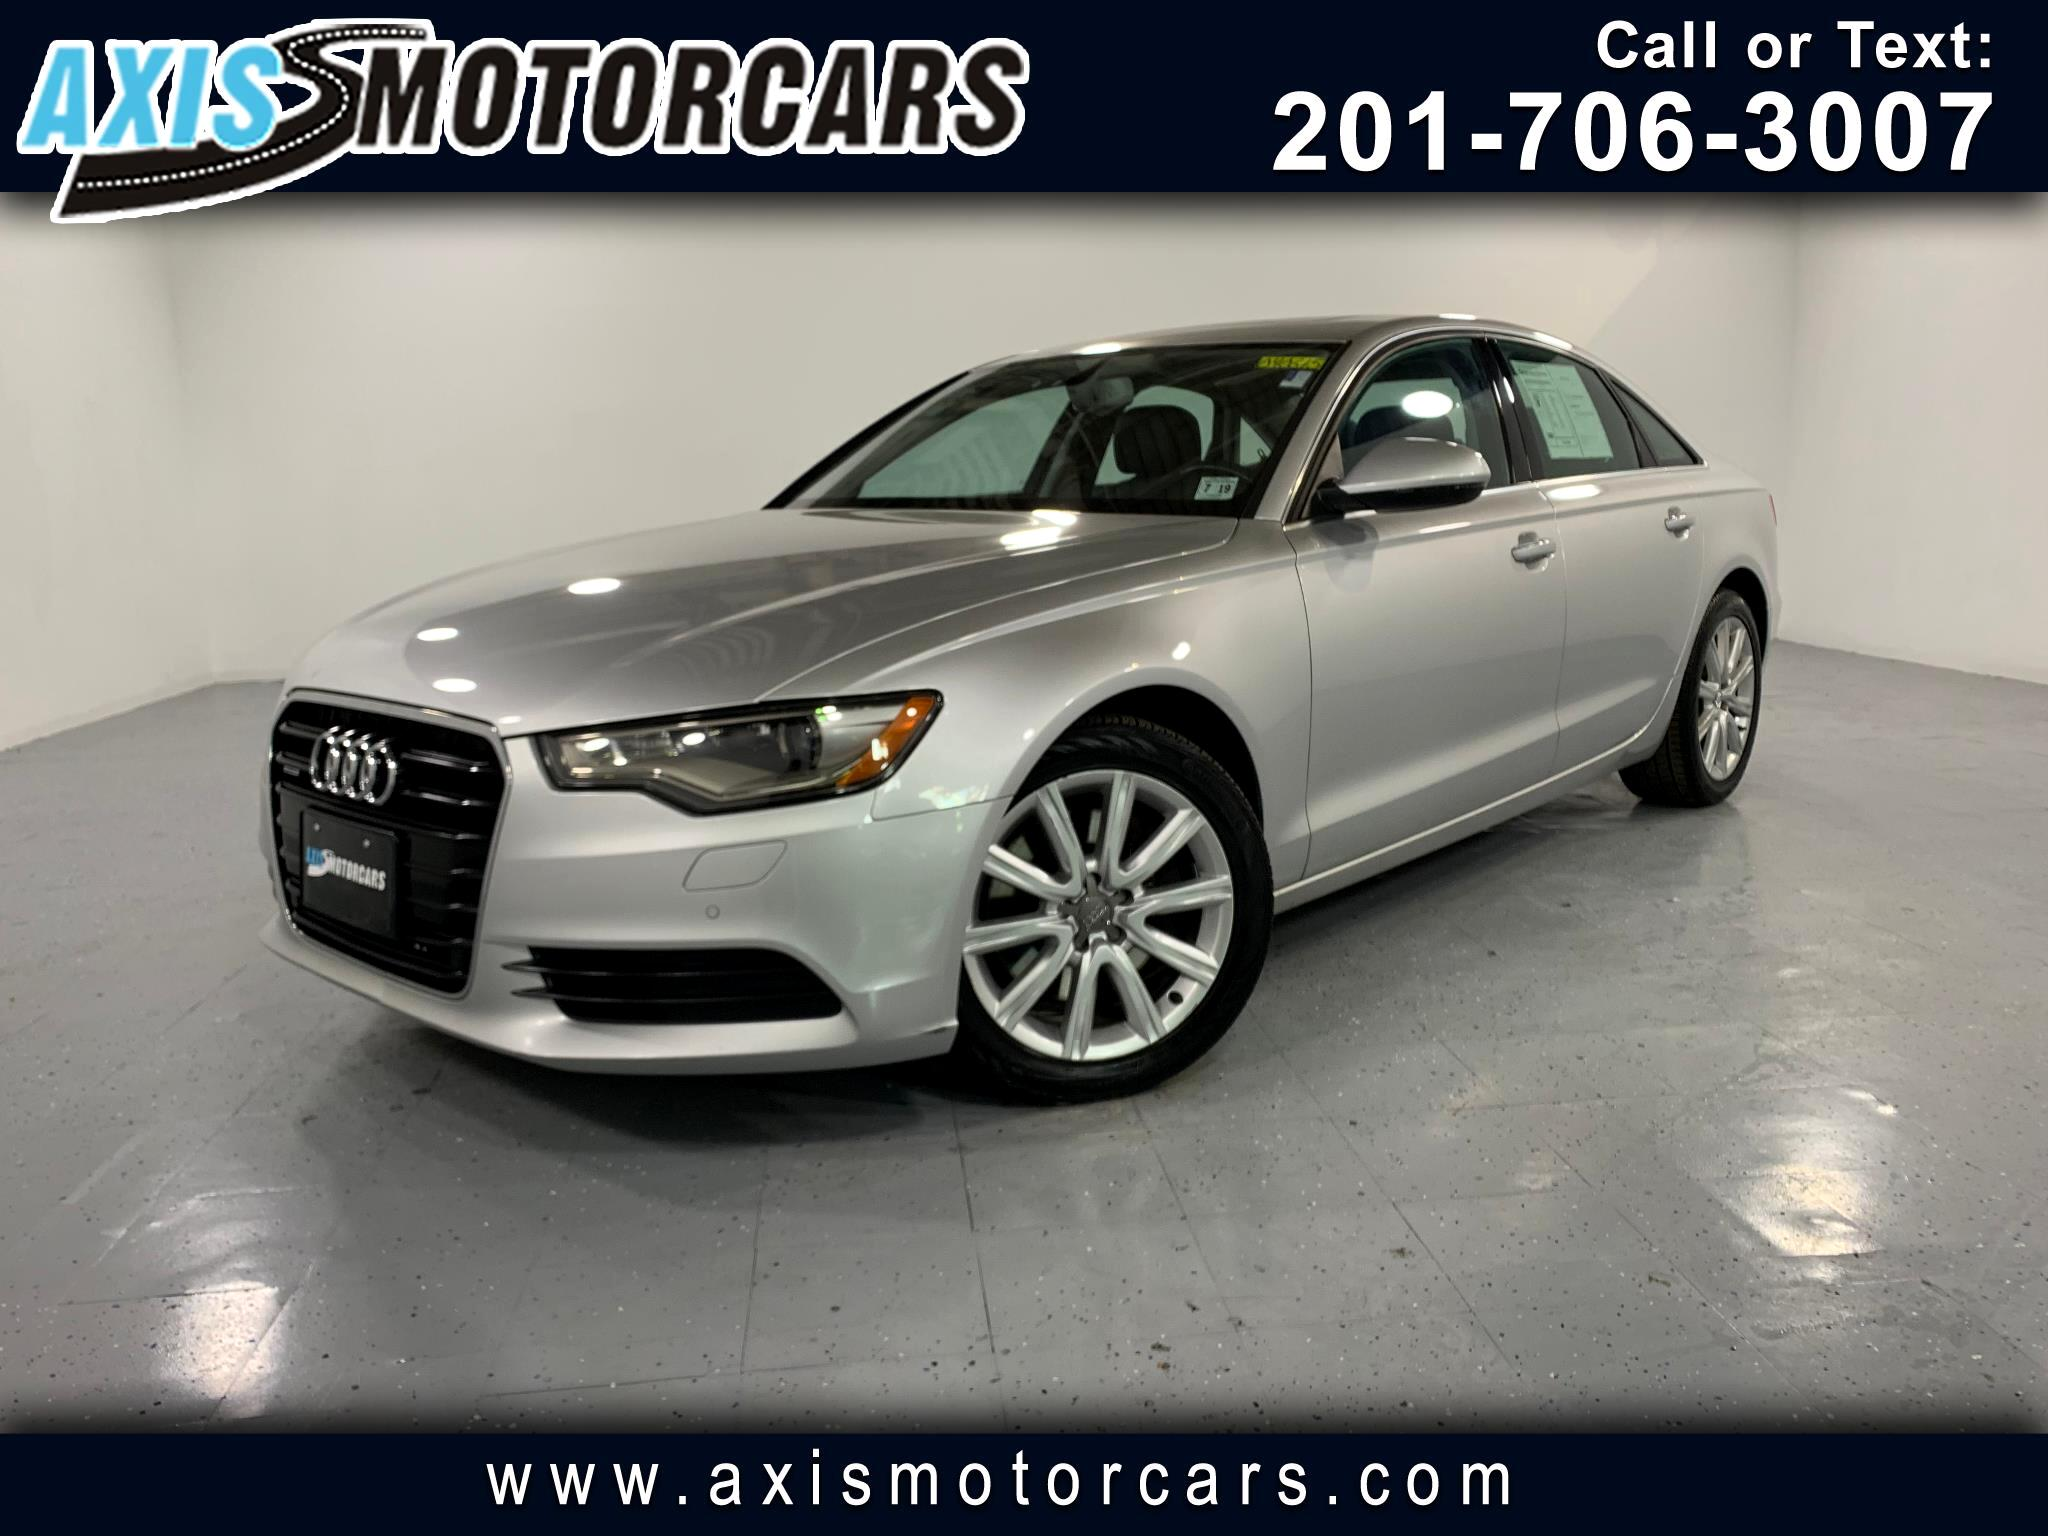 2014 Audi A6 2.0T Premium Plus w/Navigation Bakup Camera